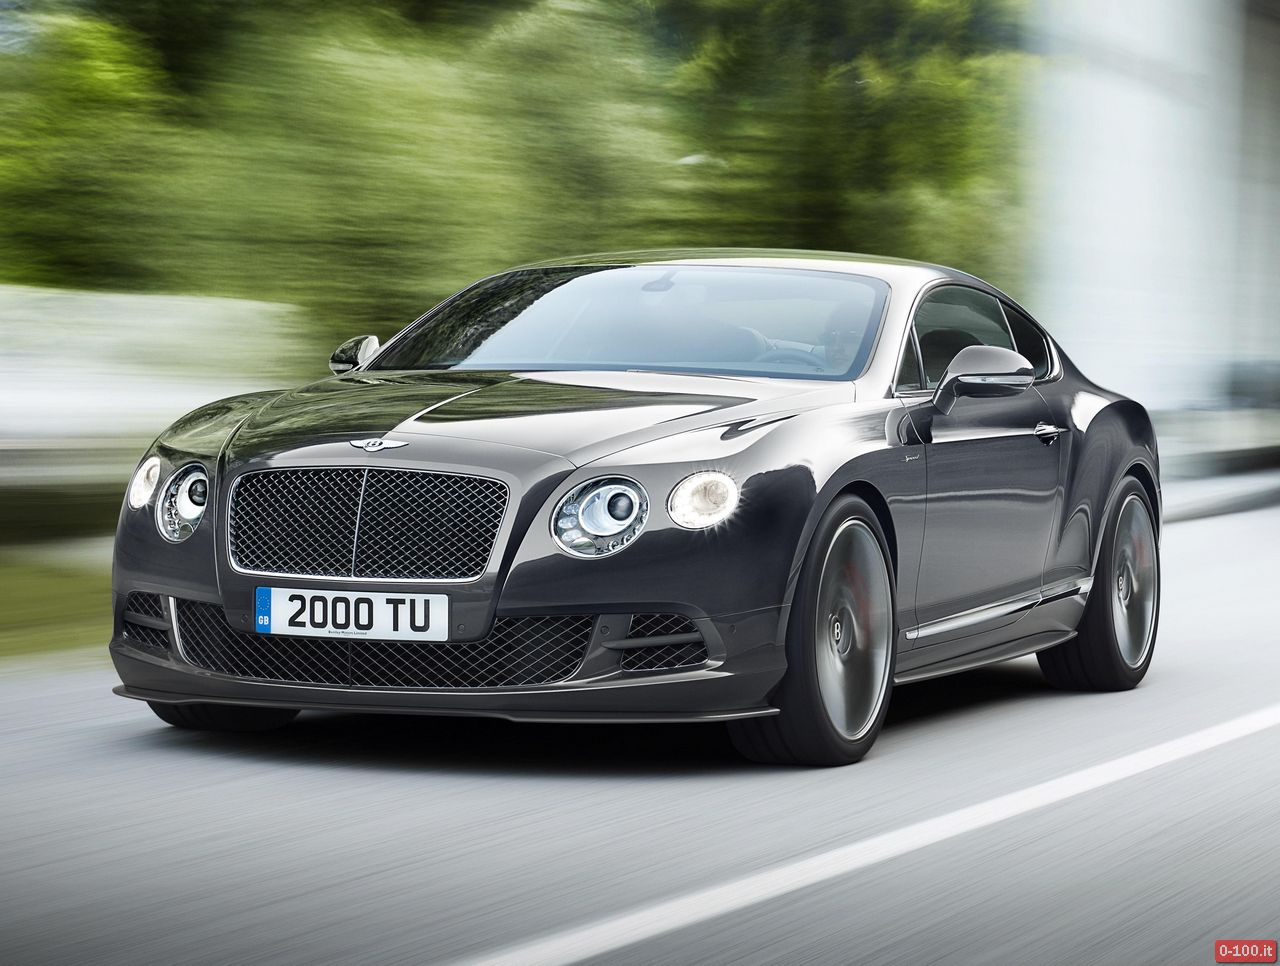 geneve-2014-bentley-continental-gt-speed-2015-635-hp-cv-prezzo-price-0-100_7